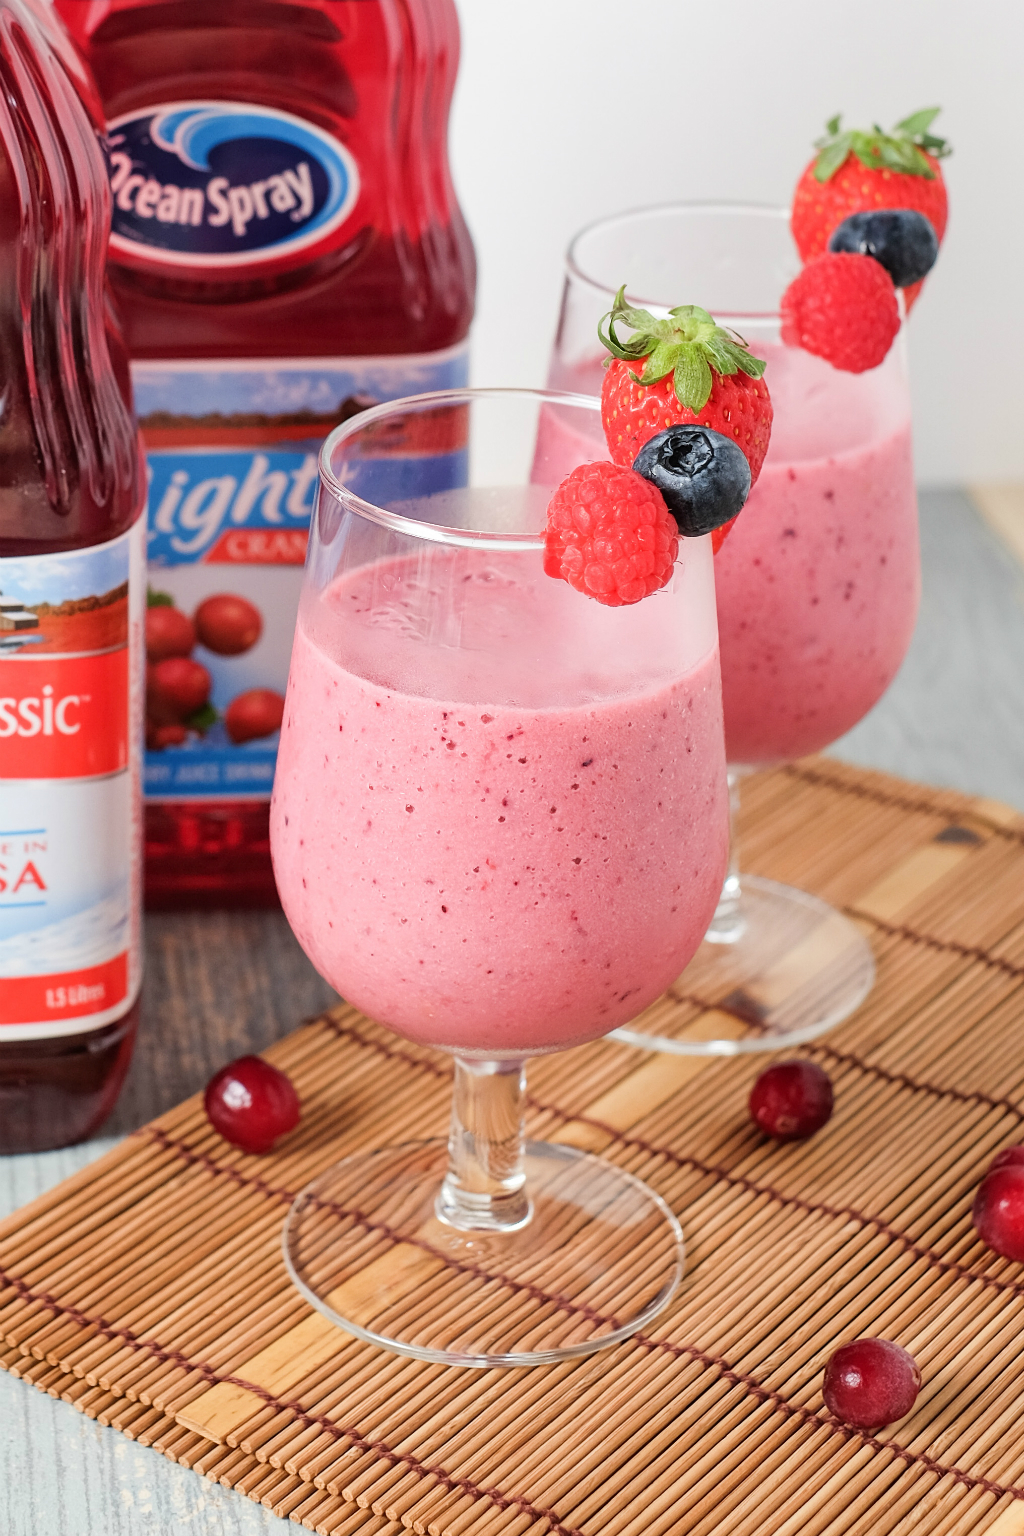 Ocean Spray's Mixed Berry Smoothie